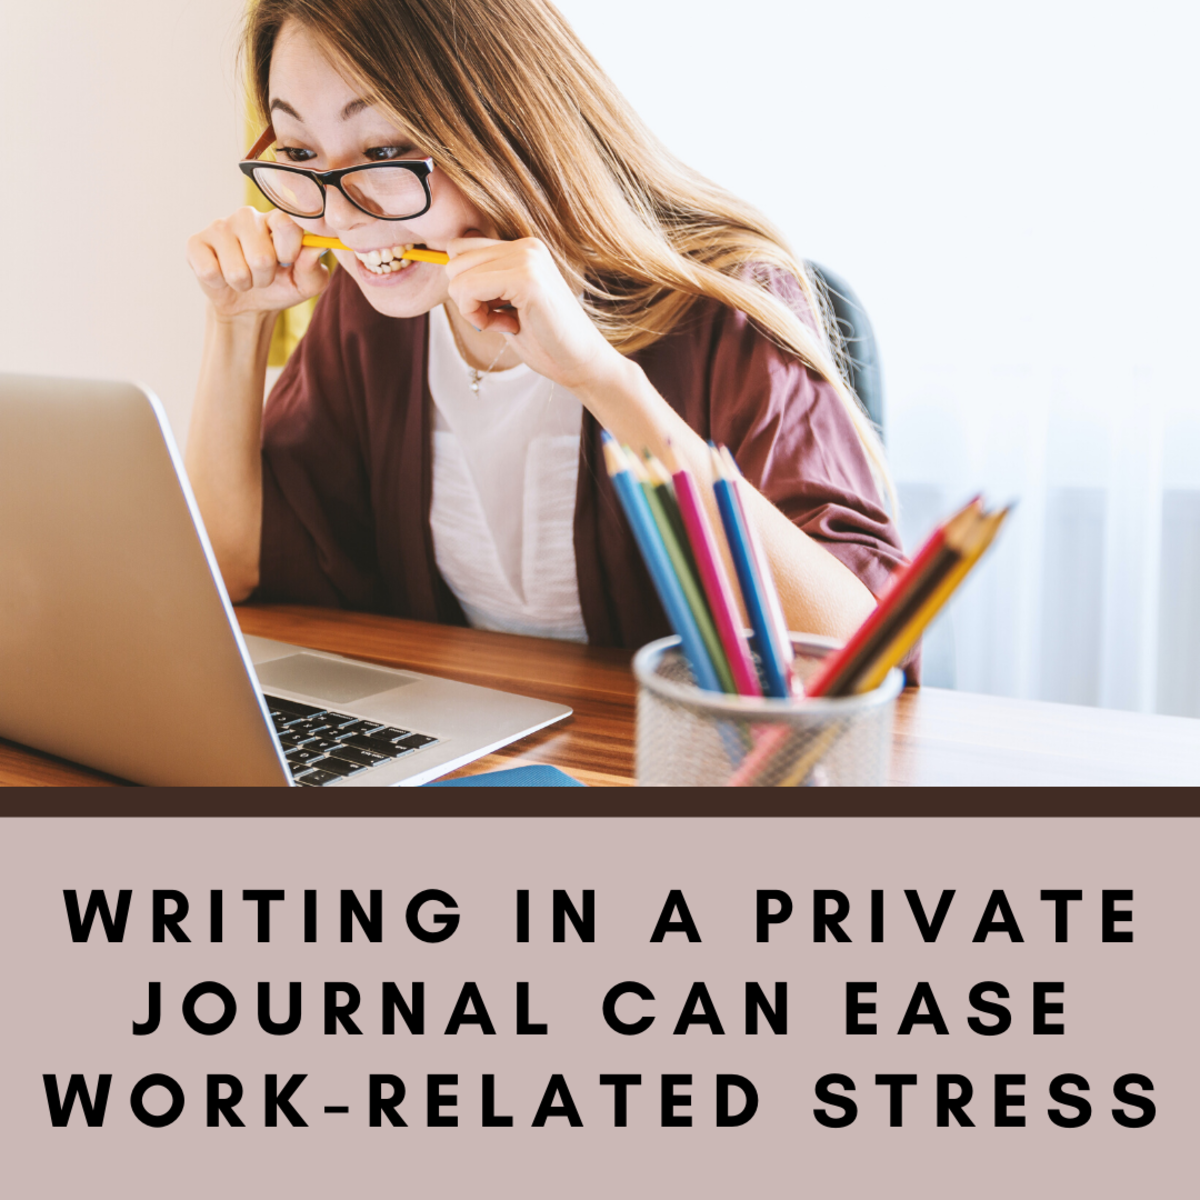 How Writing in a Private Journal Can Ease Work-Related Stress